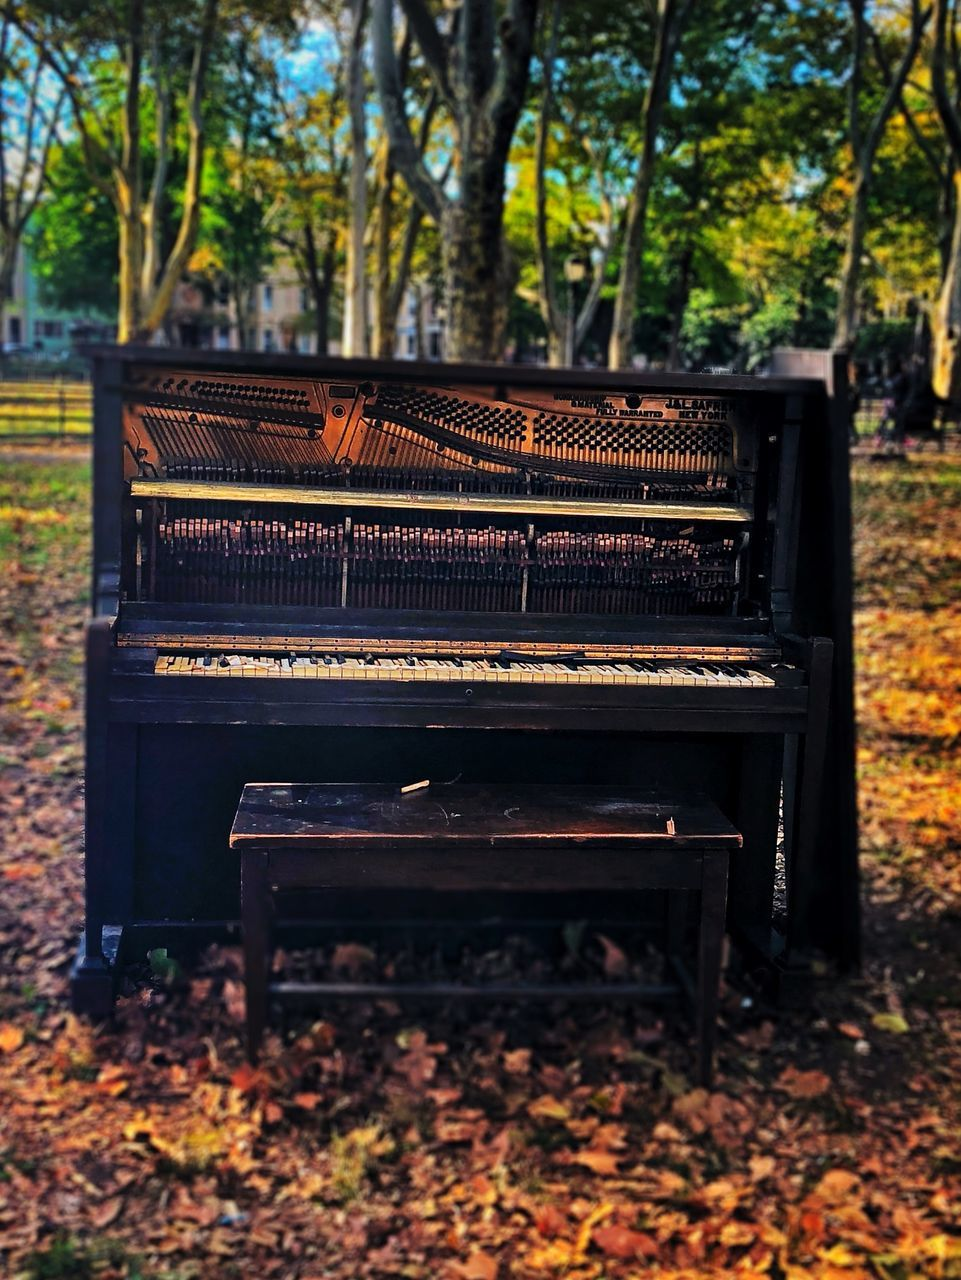 autumn, tree, bench, plant part, leaf, park, day, seat, wood - material, nature, piano, park - man made space, change, park bench, land, no people, plant, music, empty, musical equipment, outdoors, keyboard instrument